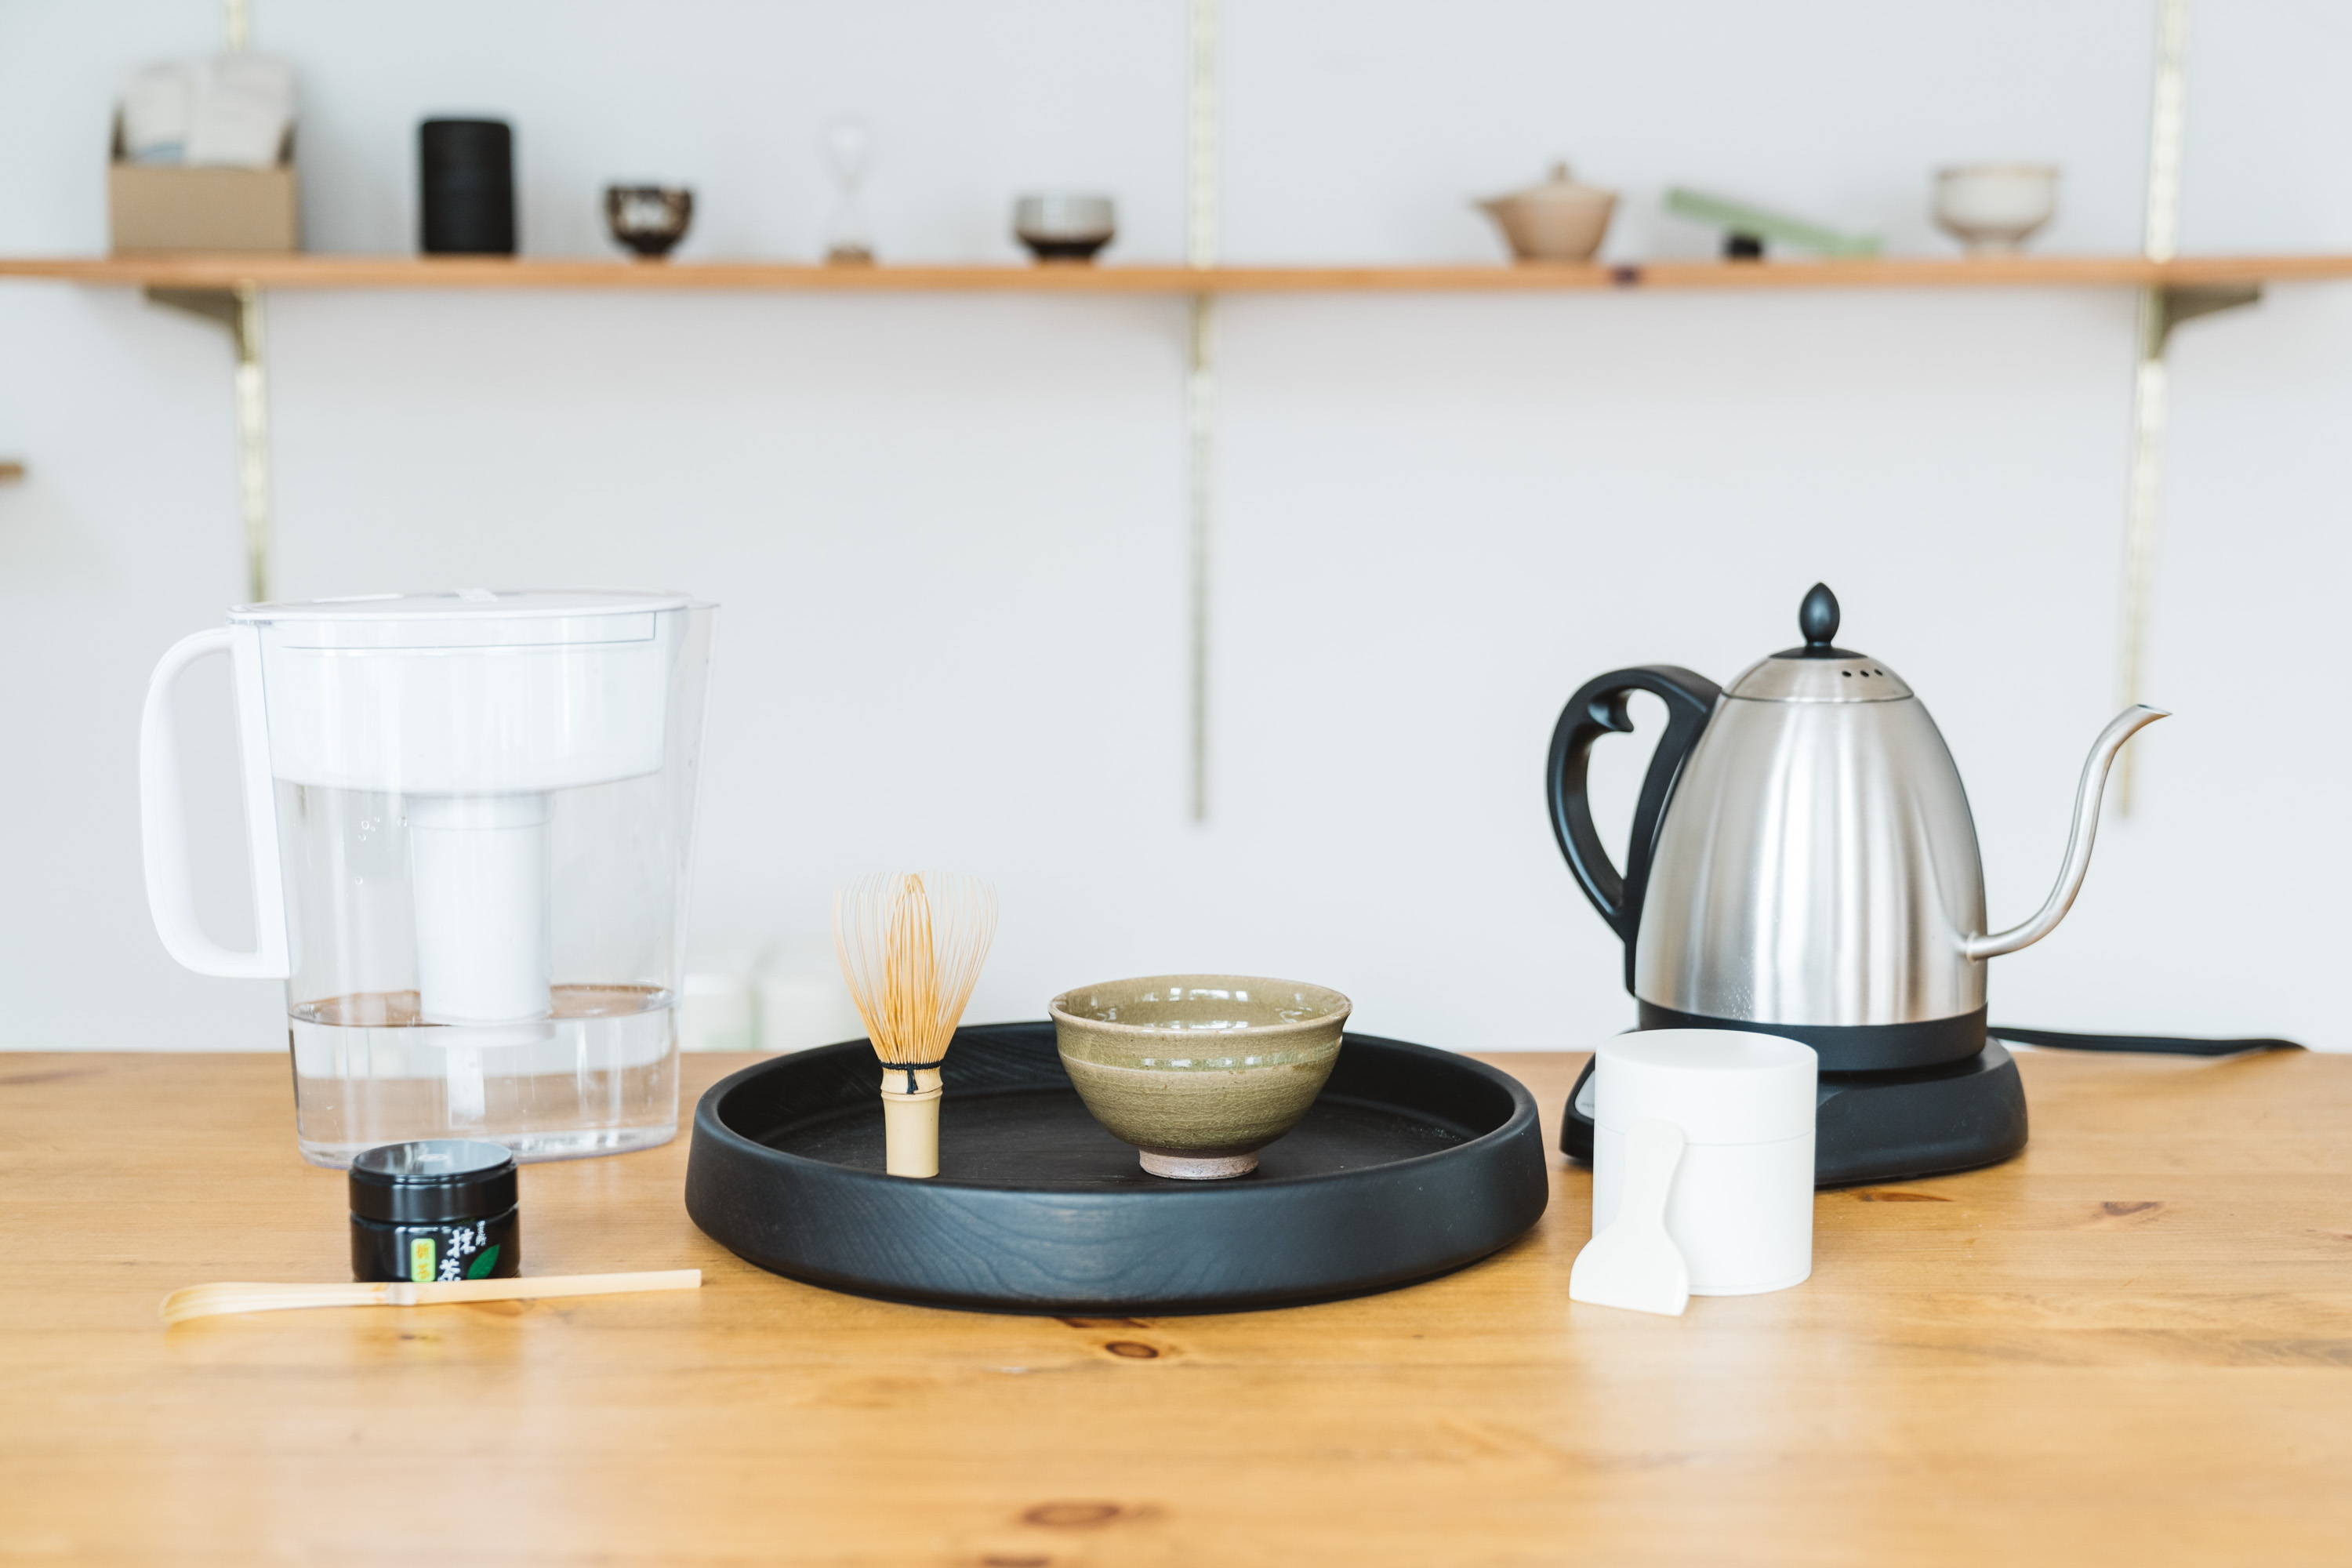 Equipment needed for ceremonial matcha